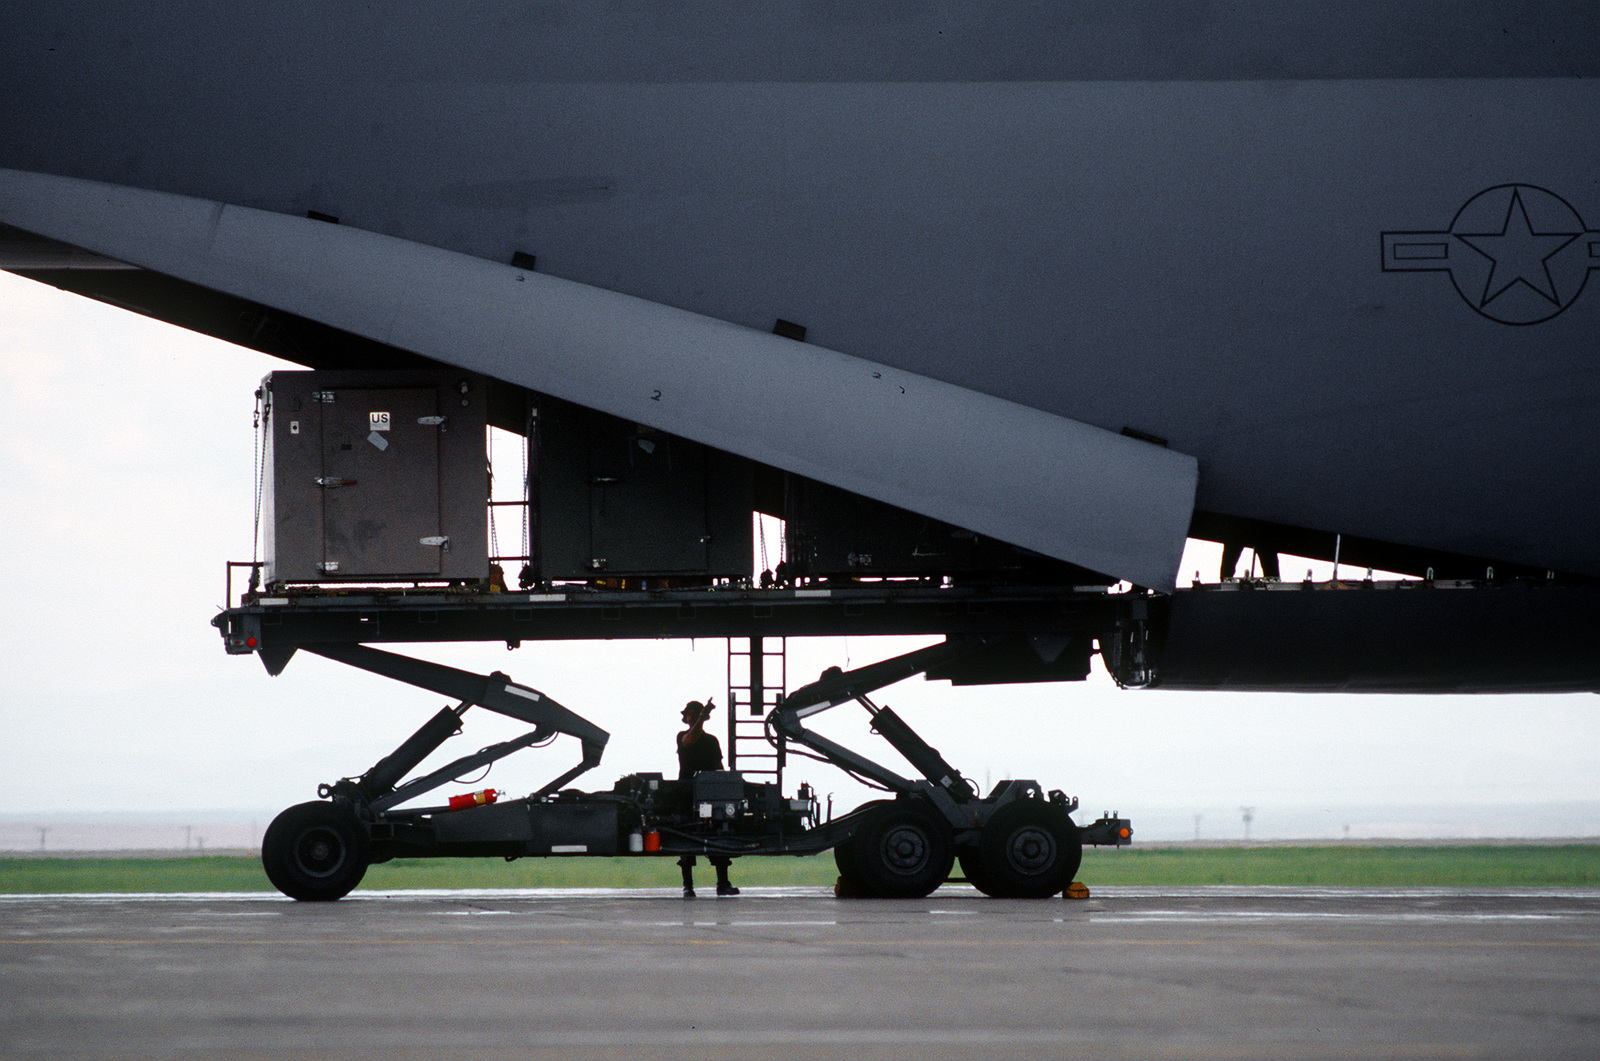 A 20,000 lb. capacity K-Loader loaded with pallets at the rear of the C-5B Galaxy from the 60th and 349th Air Mobility Wings, Travis Air Force Base, California. The equipment will be used by Air Force members who will practice their jobs with wartime scenarios and conditions during the Operational Readiness Inspection (ORI)